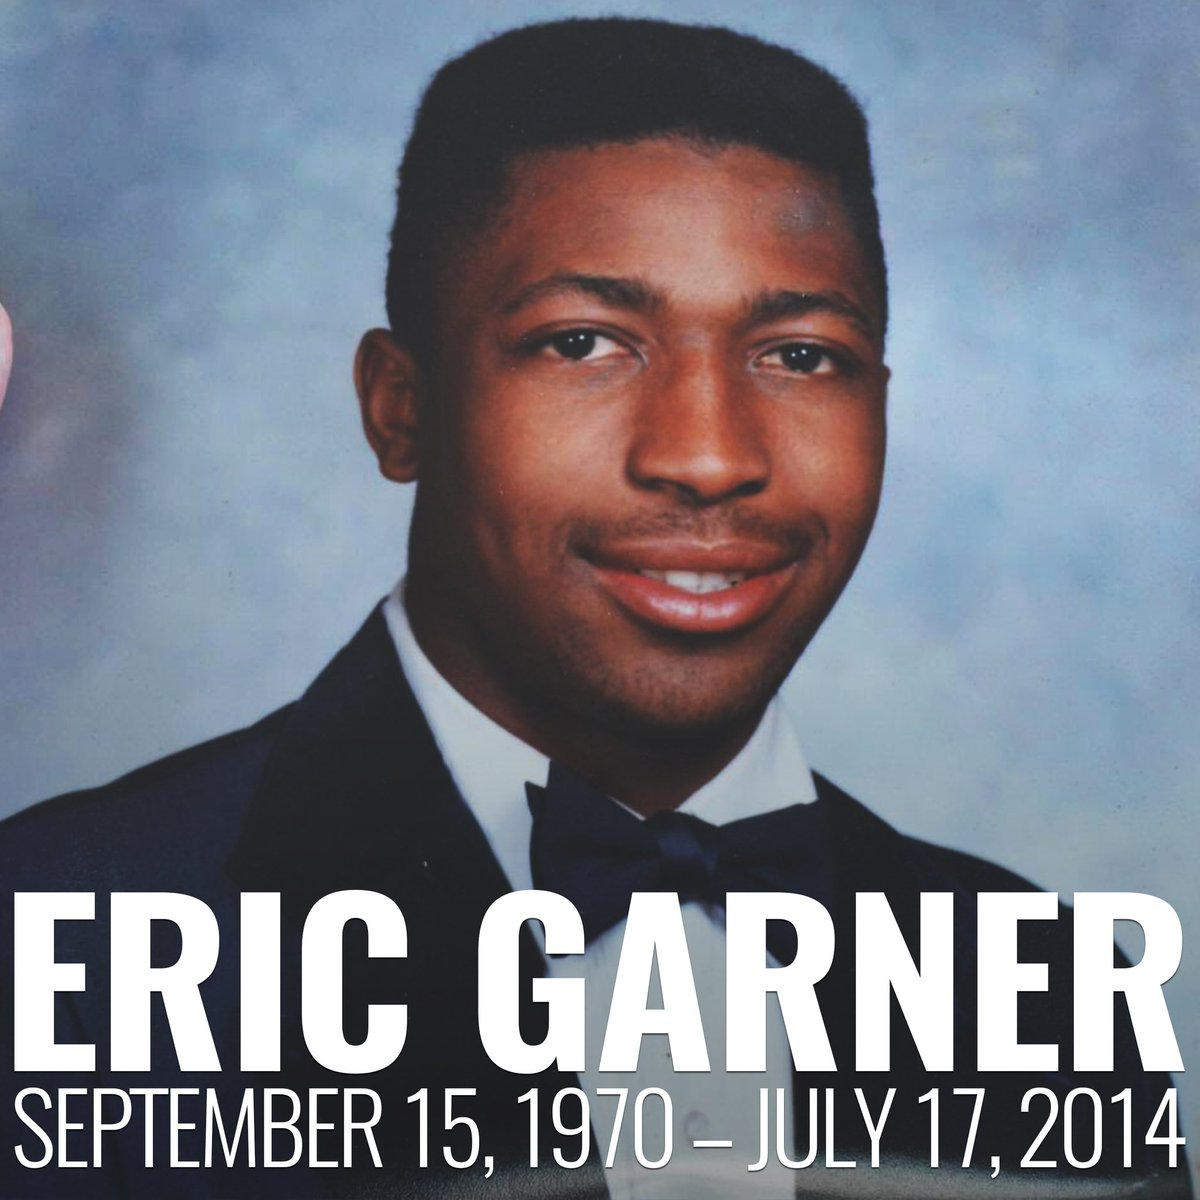 May God bless his soul!  #icantbreathe #ericgarner